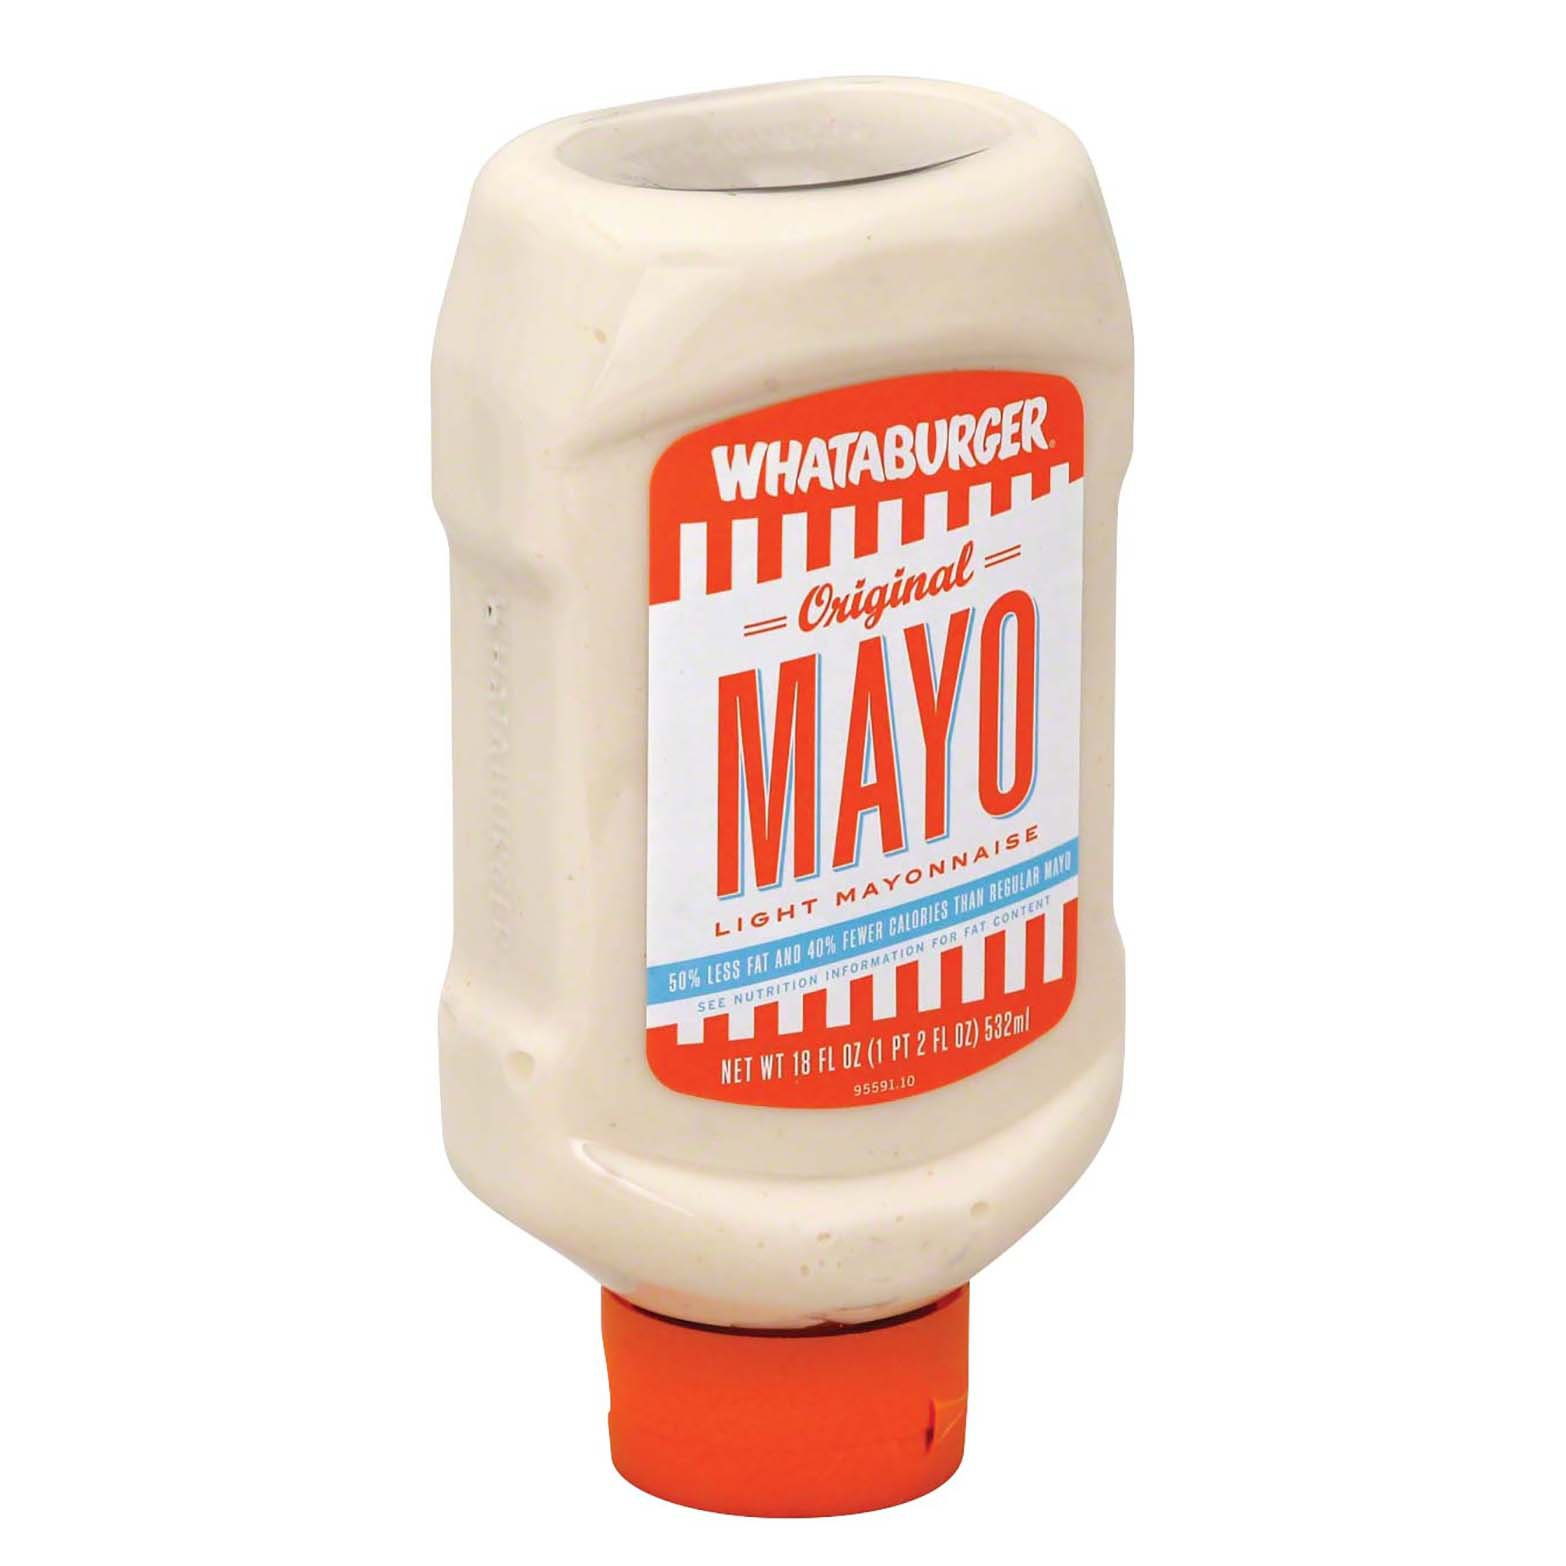 Whataburger Original Mayo Light Mayonnaise Shop Mayonnaise Spreads At H E B